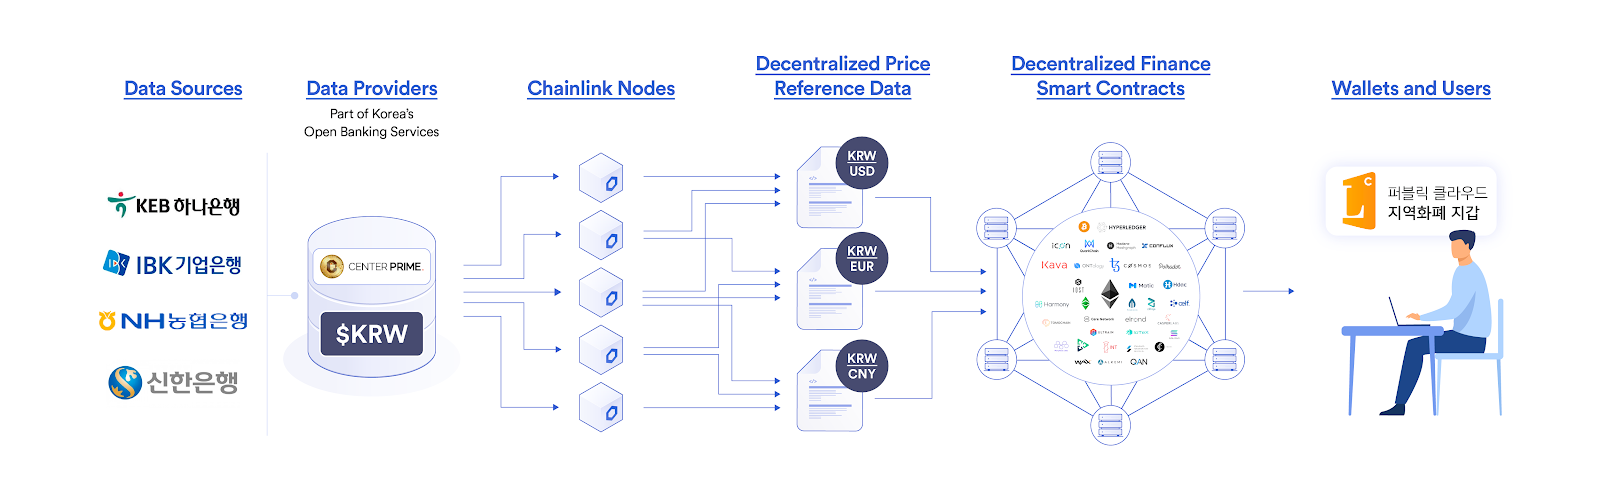 Chainlink data oracles within the DeFi ecosystem